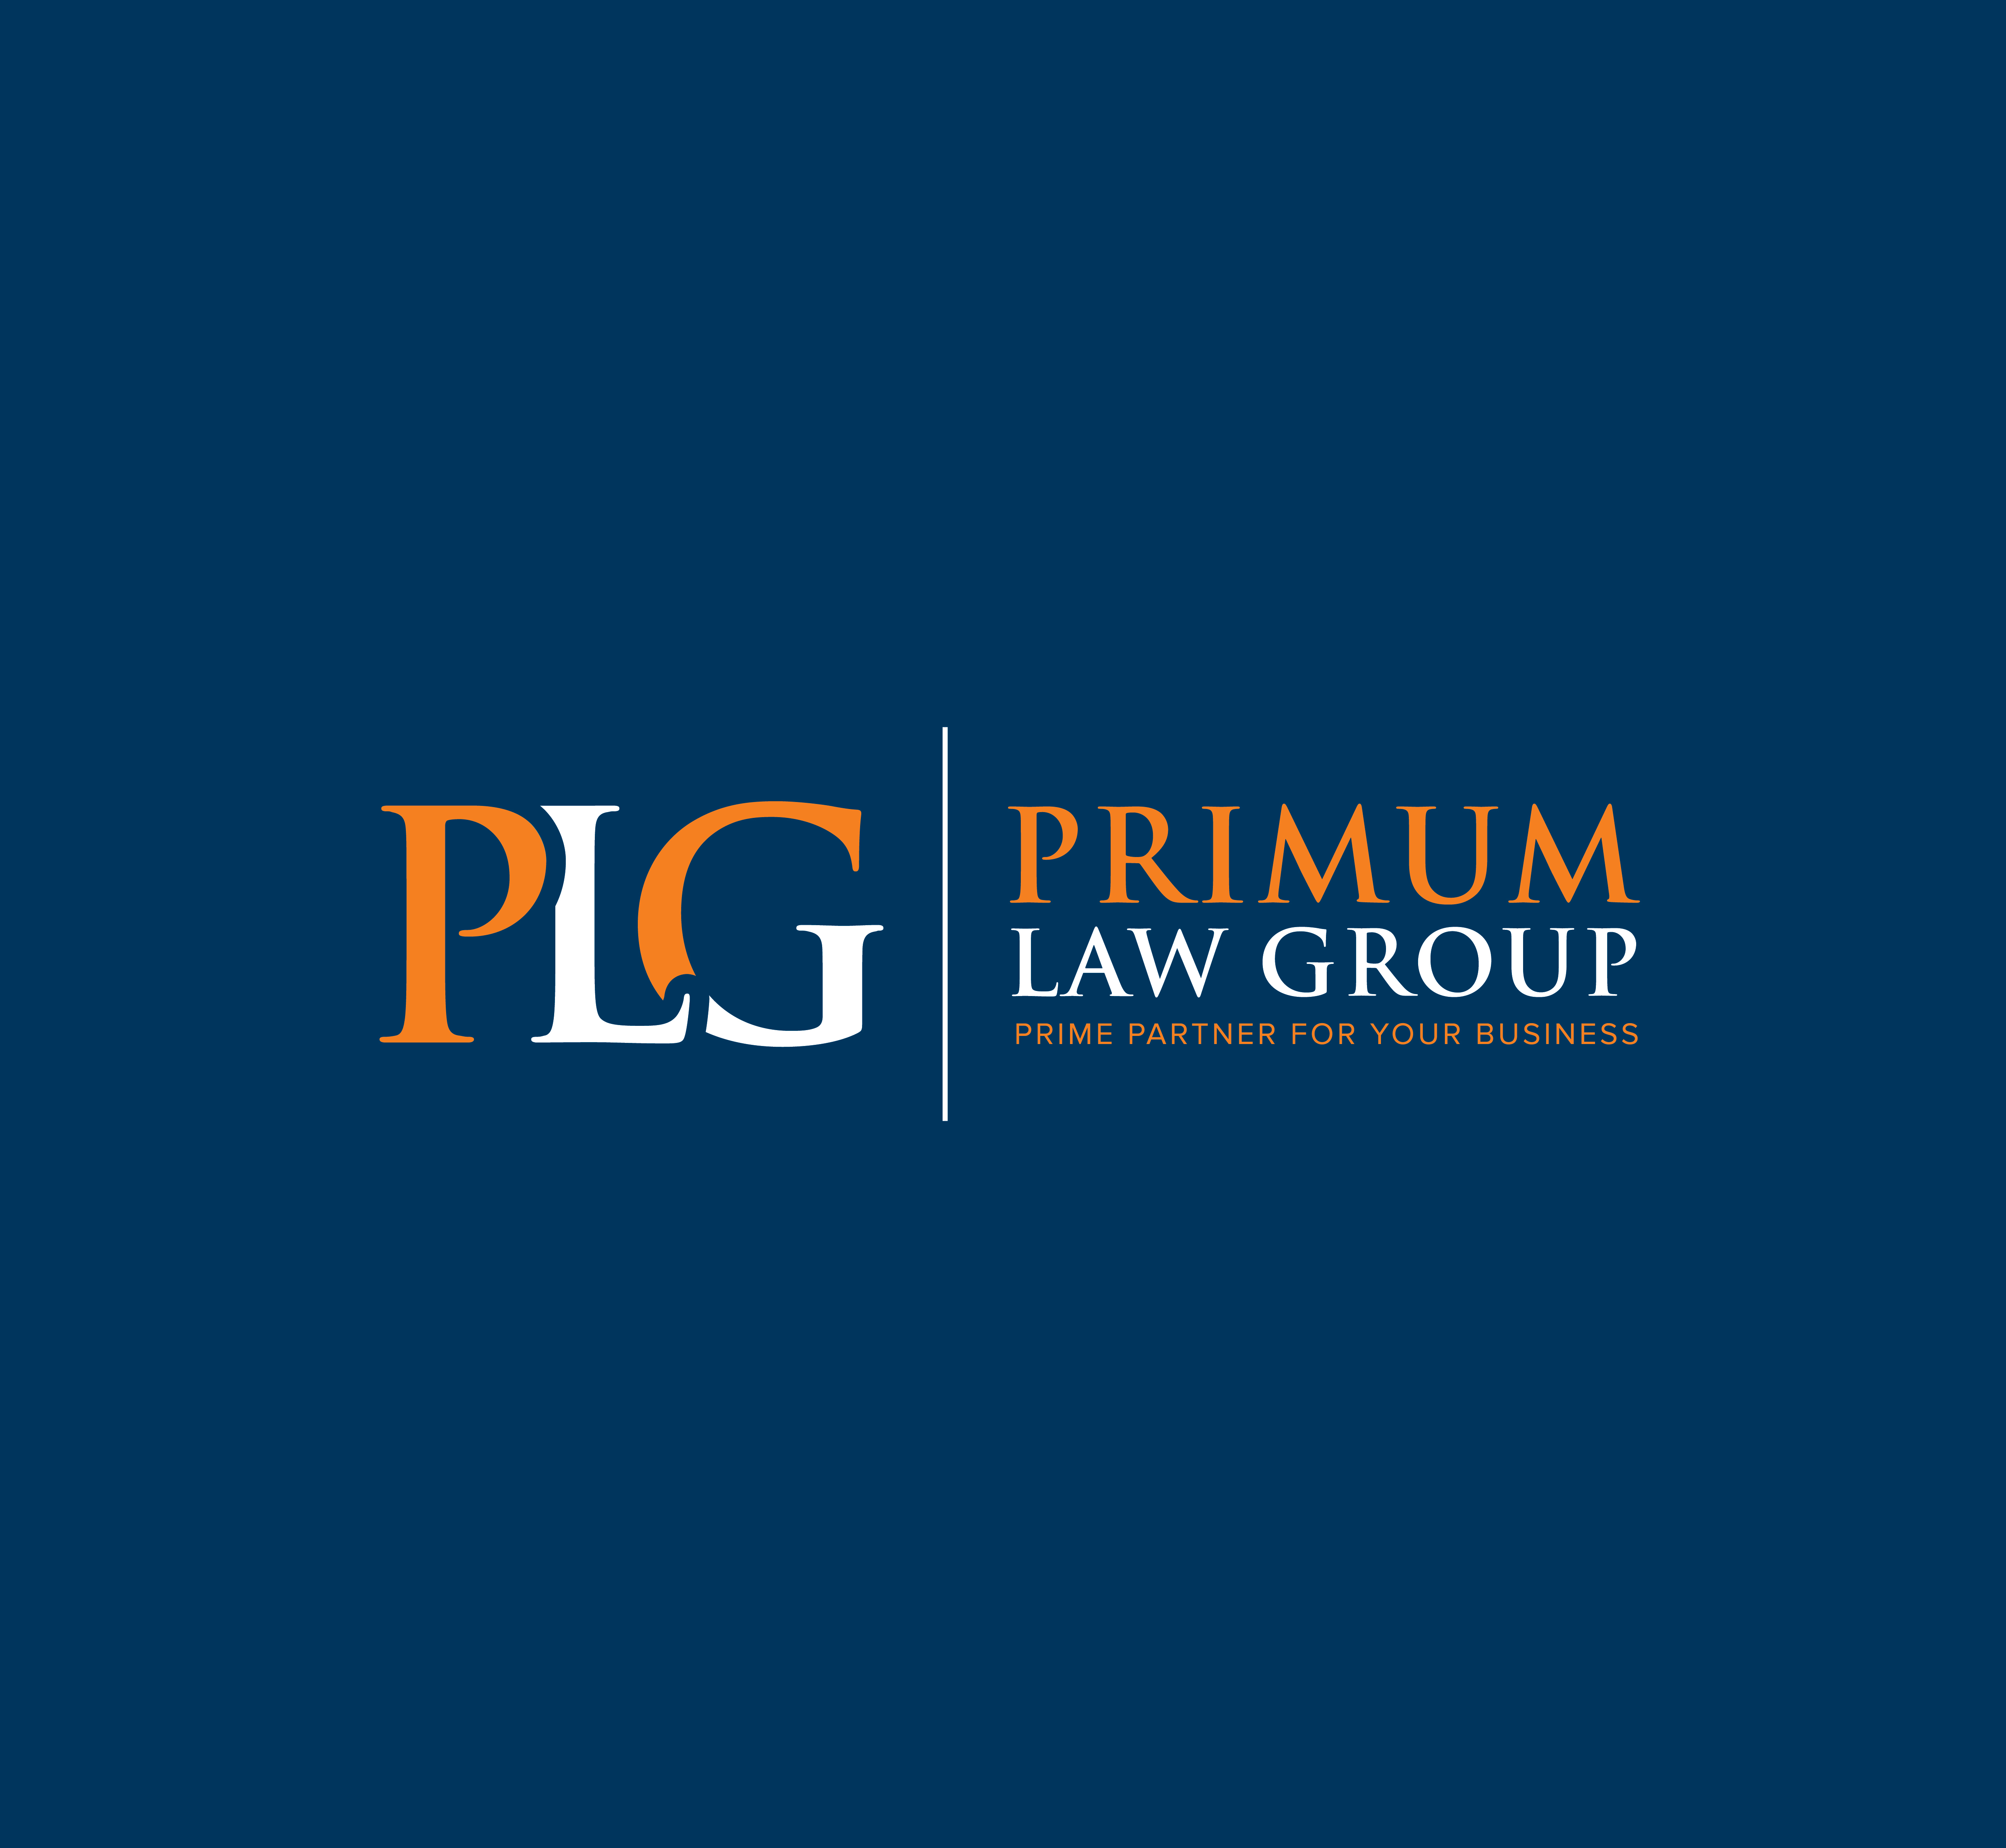 Primum Law Group